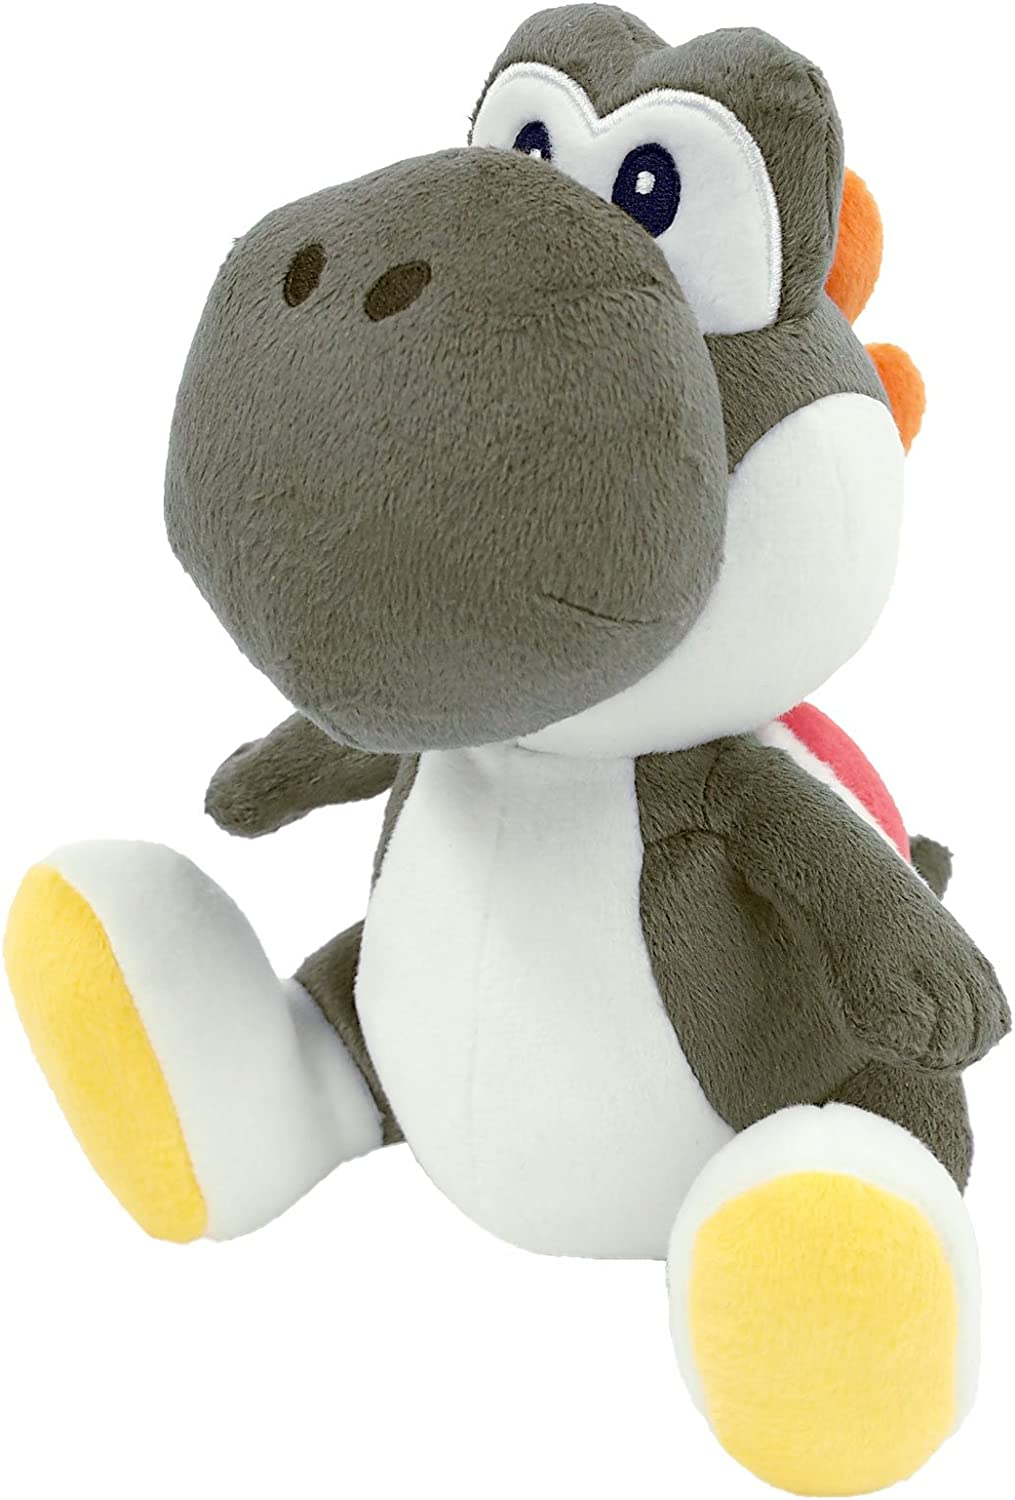 Sanei Super Mario All Star Collection Yoshi Plush Small (Black)